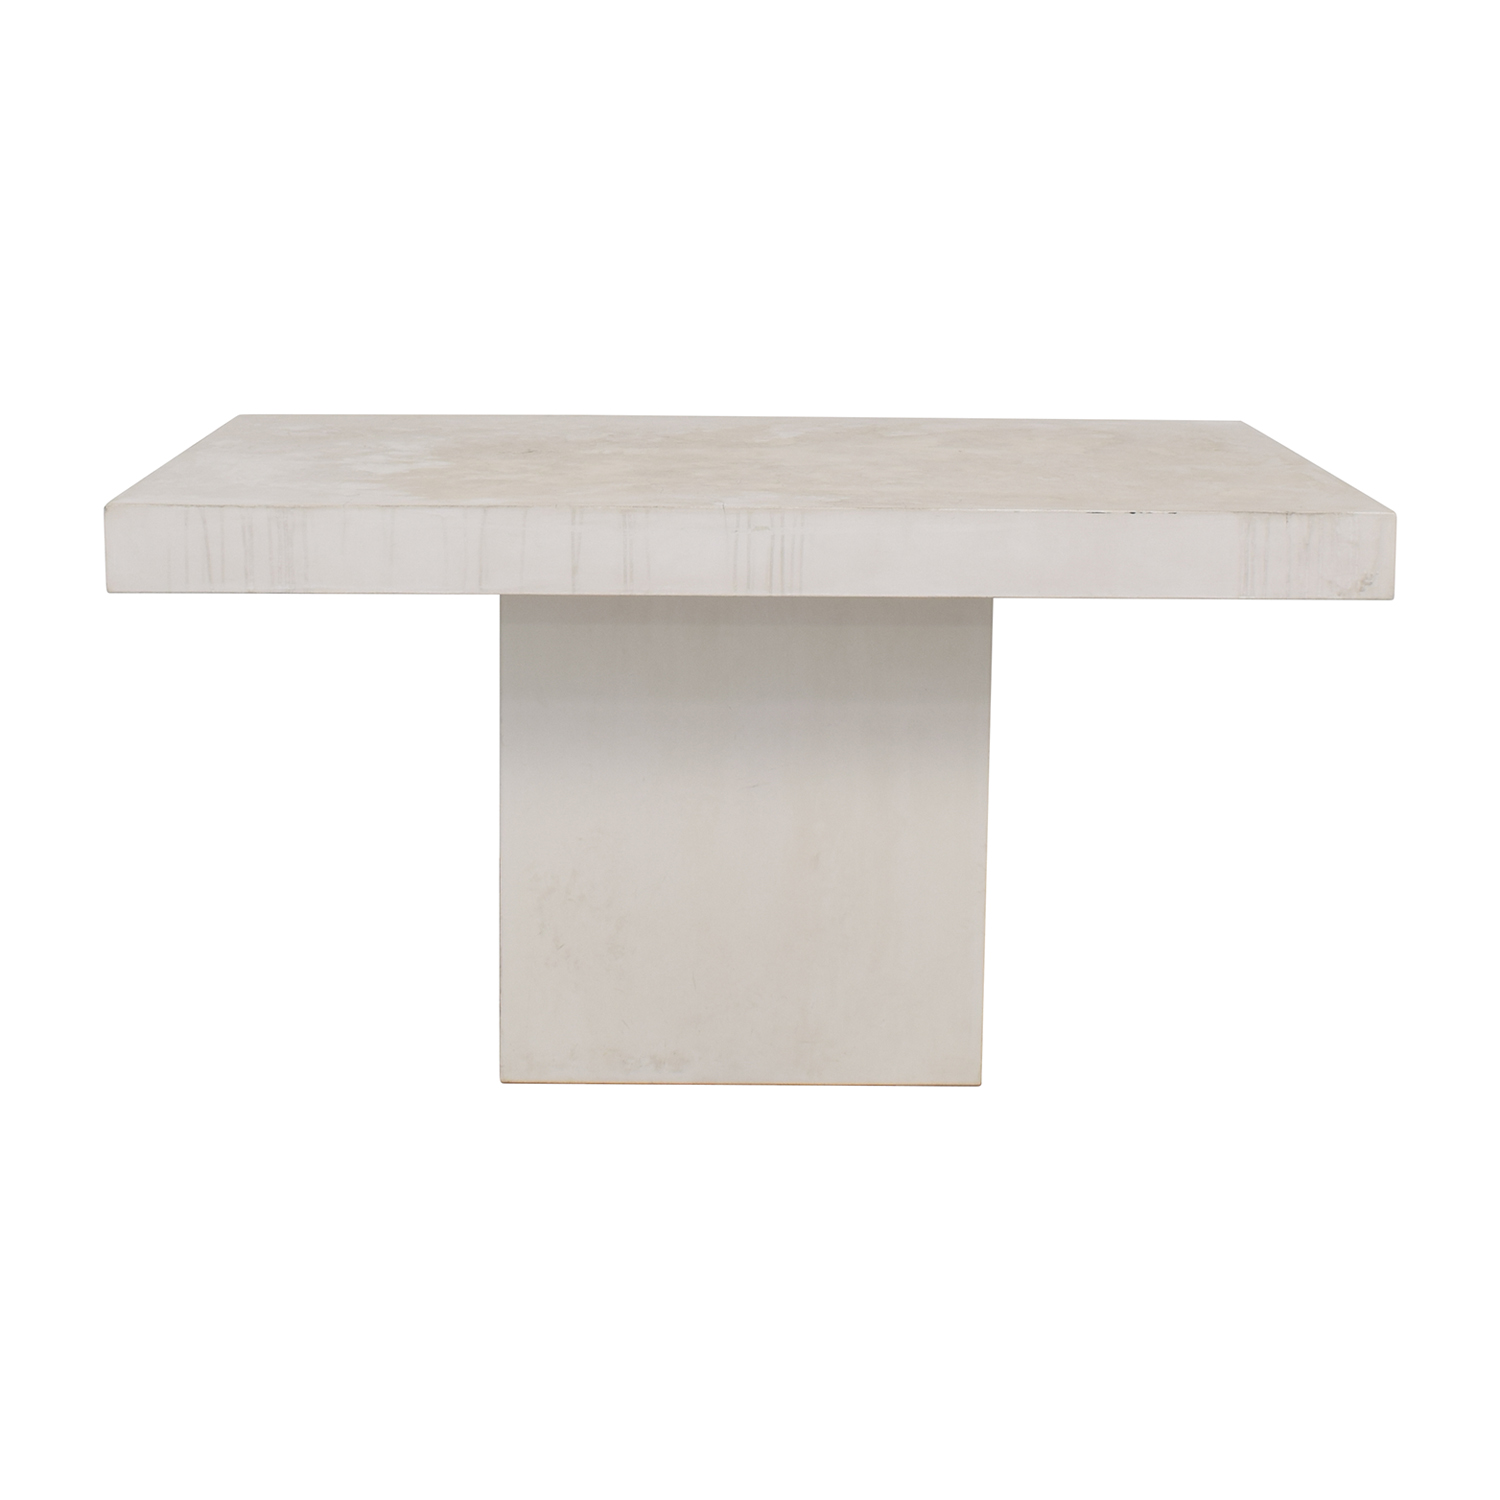 CB2 CB2 Fuze Ivory White Stone Dining Table discount